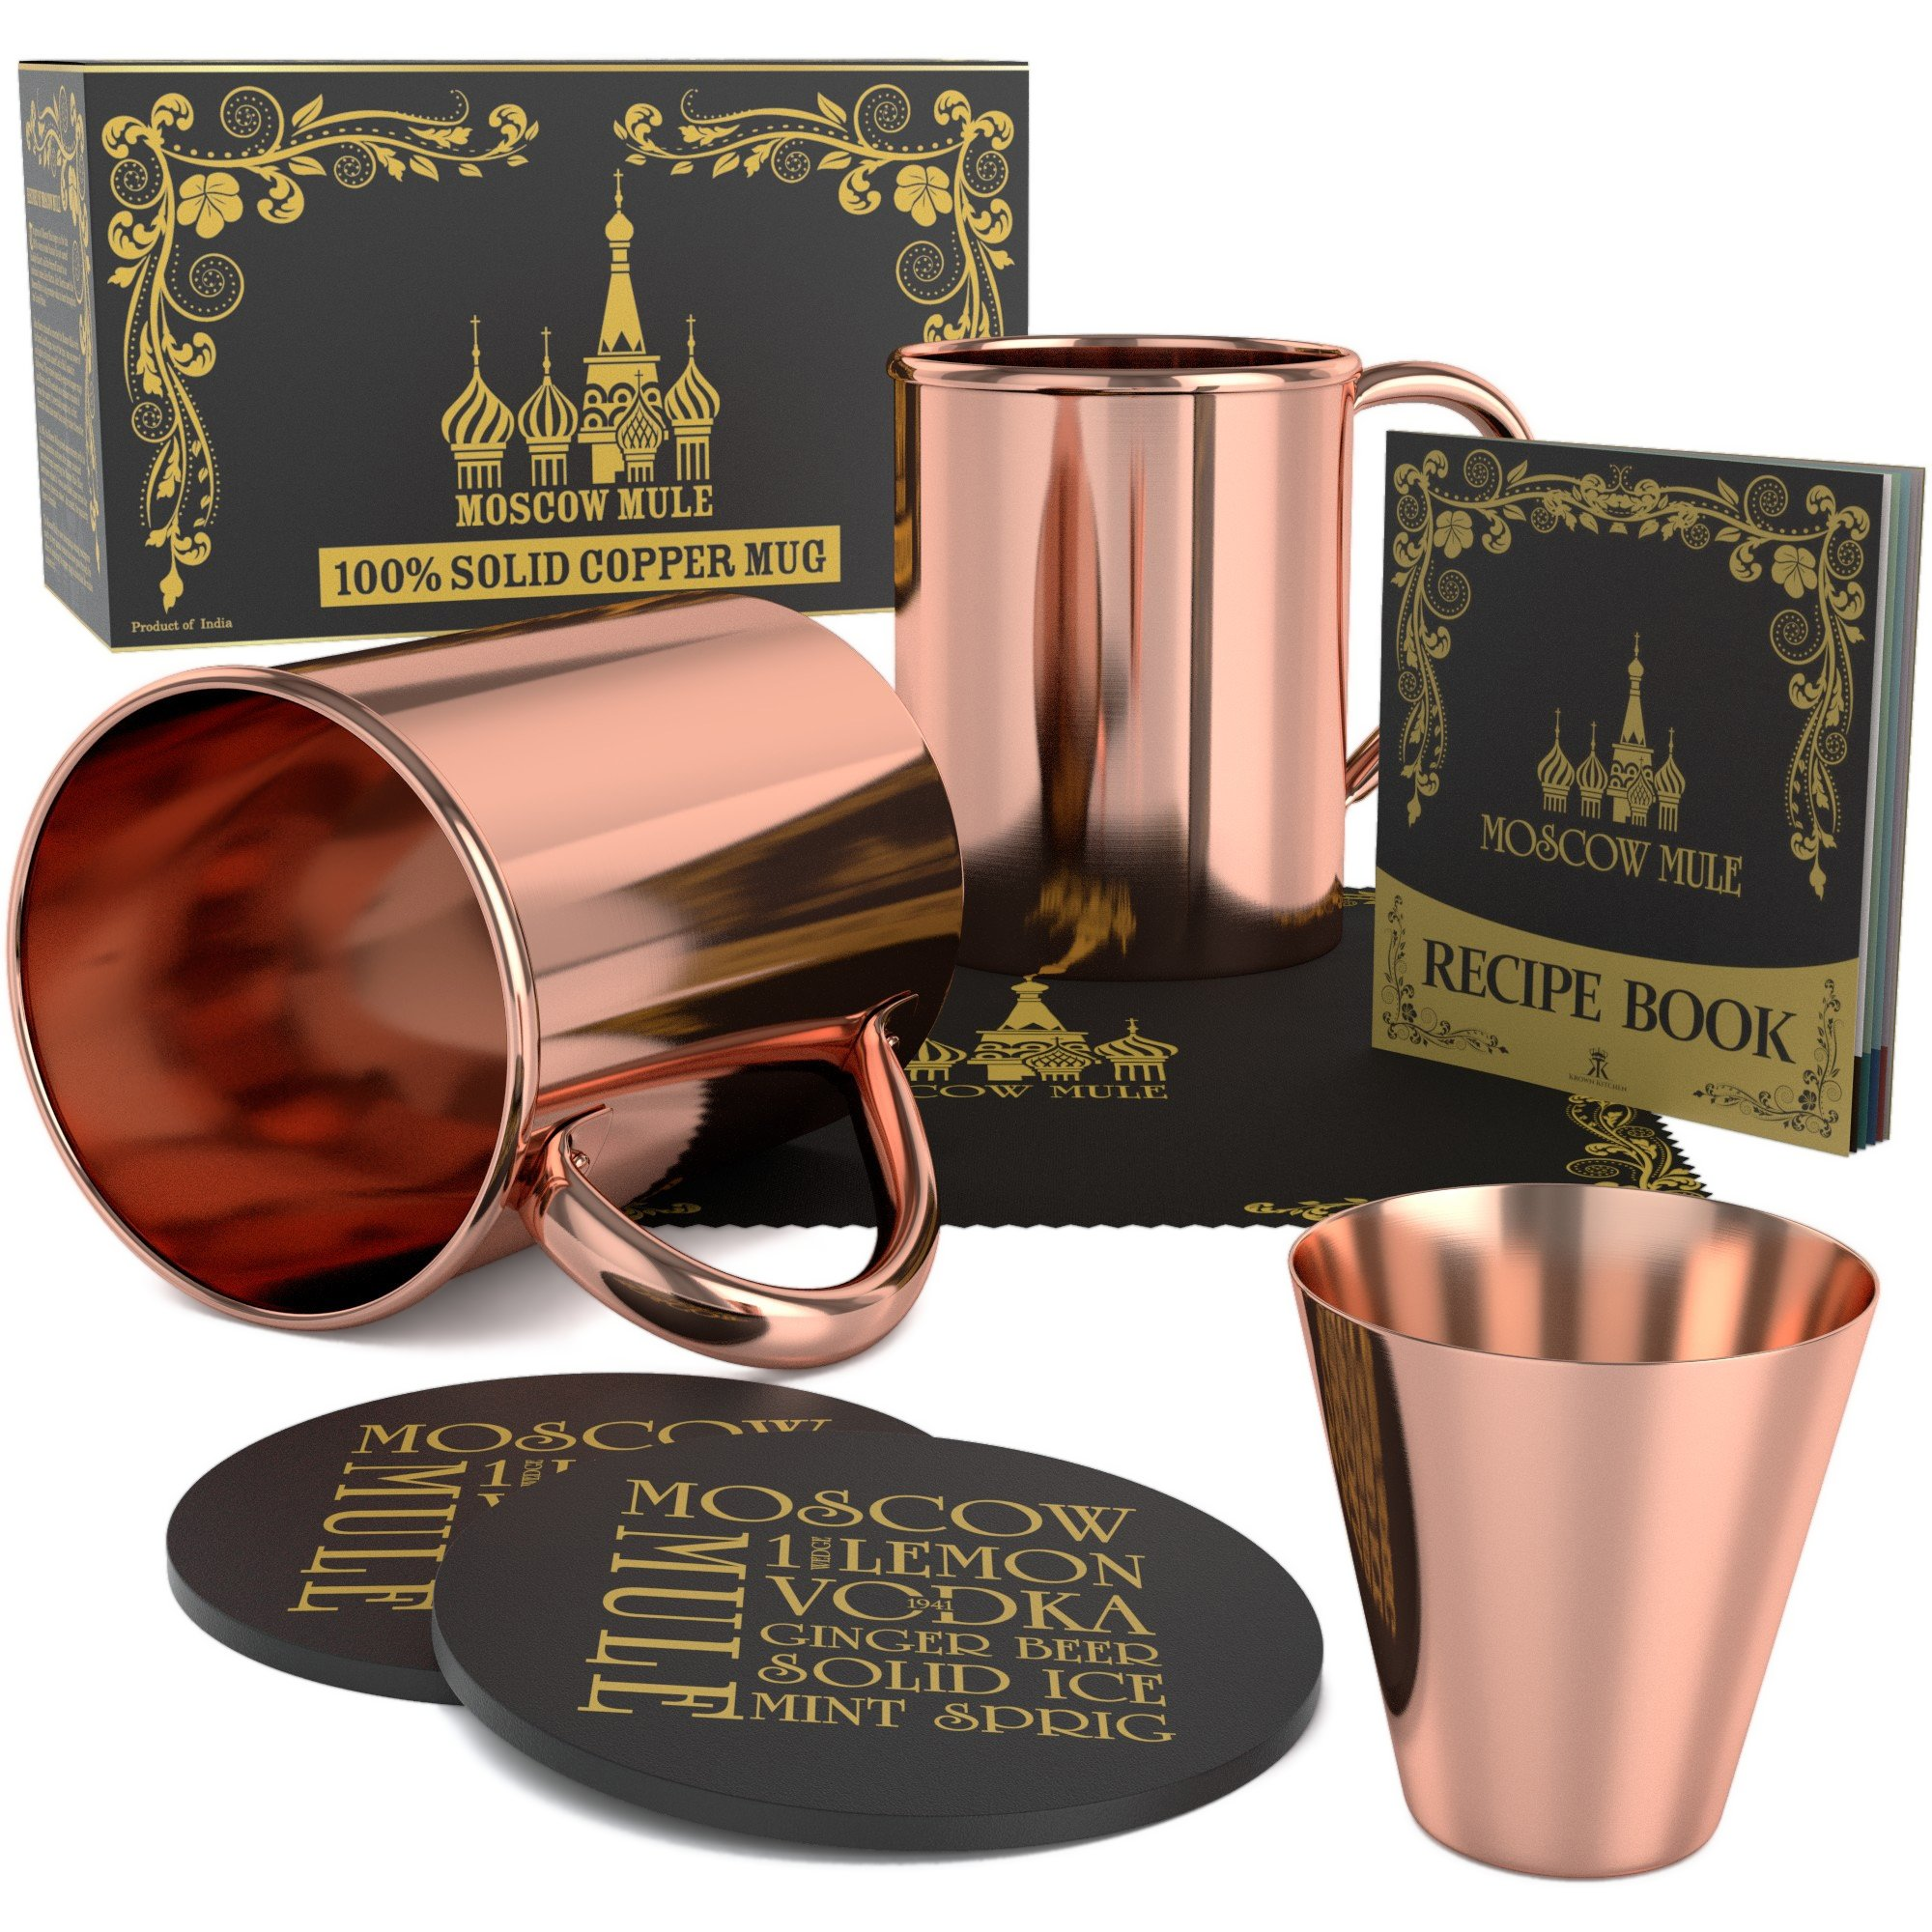 Krown Kitchen - 100% solid moscow mule copper mug (2) by Krown Kitchen (Image #2)